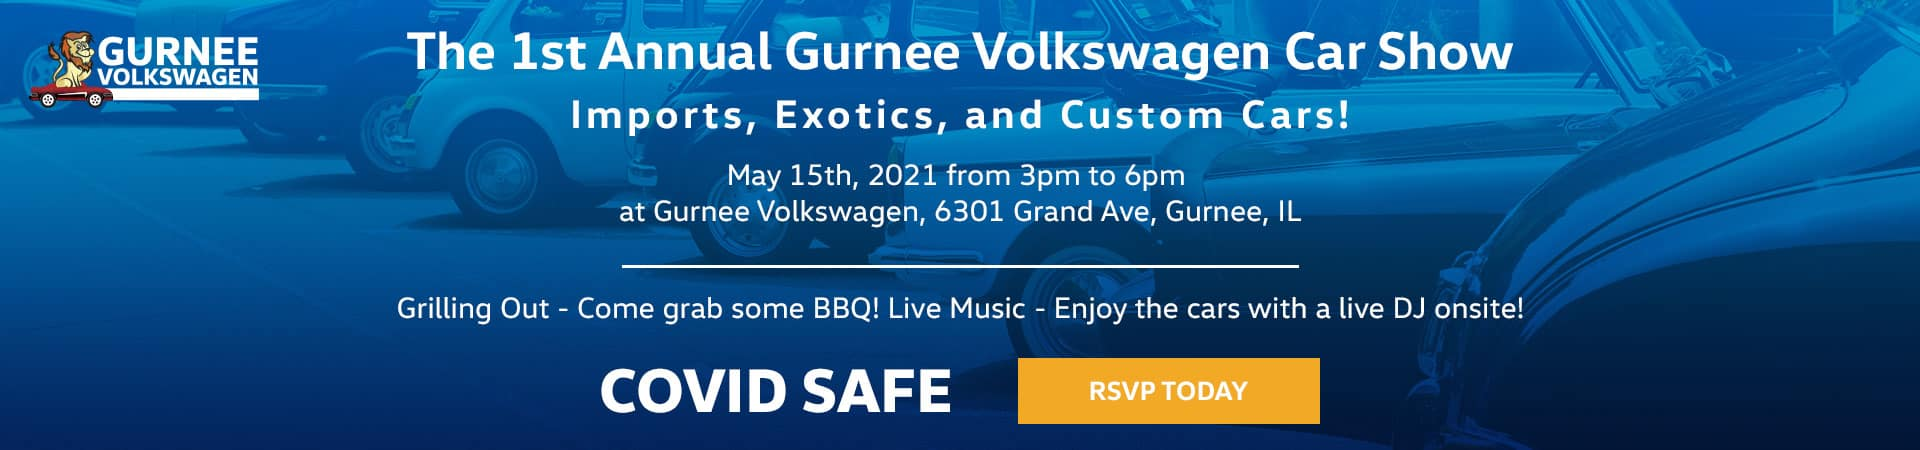 The 1st Annual Gurnee Volkswagen Car Show Imports, Exotics, and Custom Cars! May 15th from 4pm to 6pm at Gurnee Volkswagen, 6301 W. Grand Ave. Gurnee IL Grilling Out - Come grab some BBQ! Live Music - Enjoy the cars with a live DJ onsite! Covid Safe